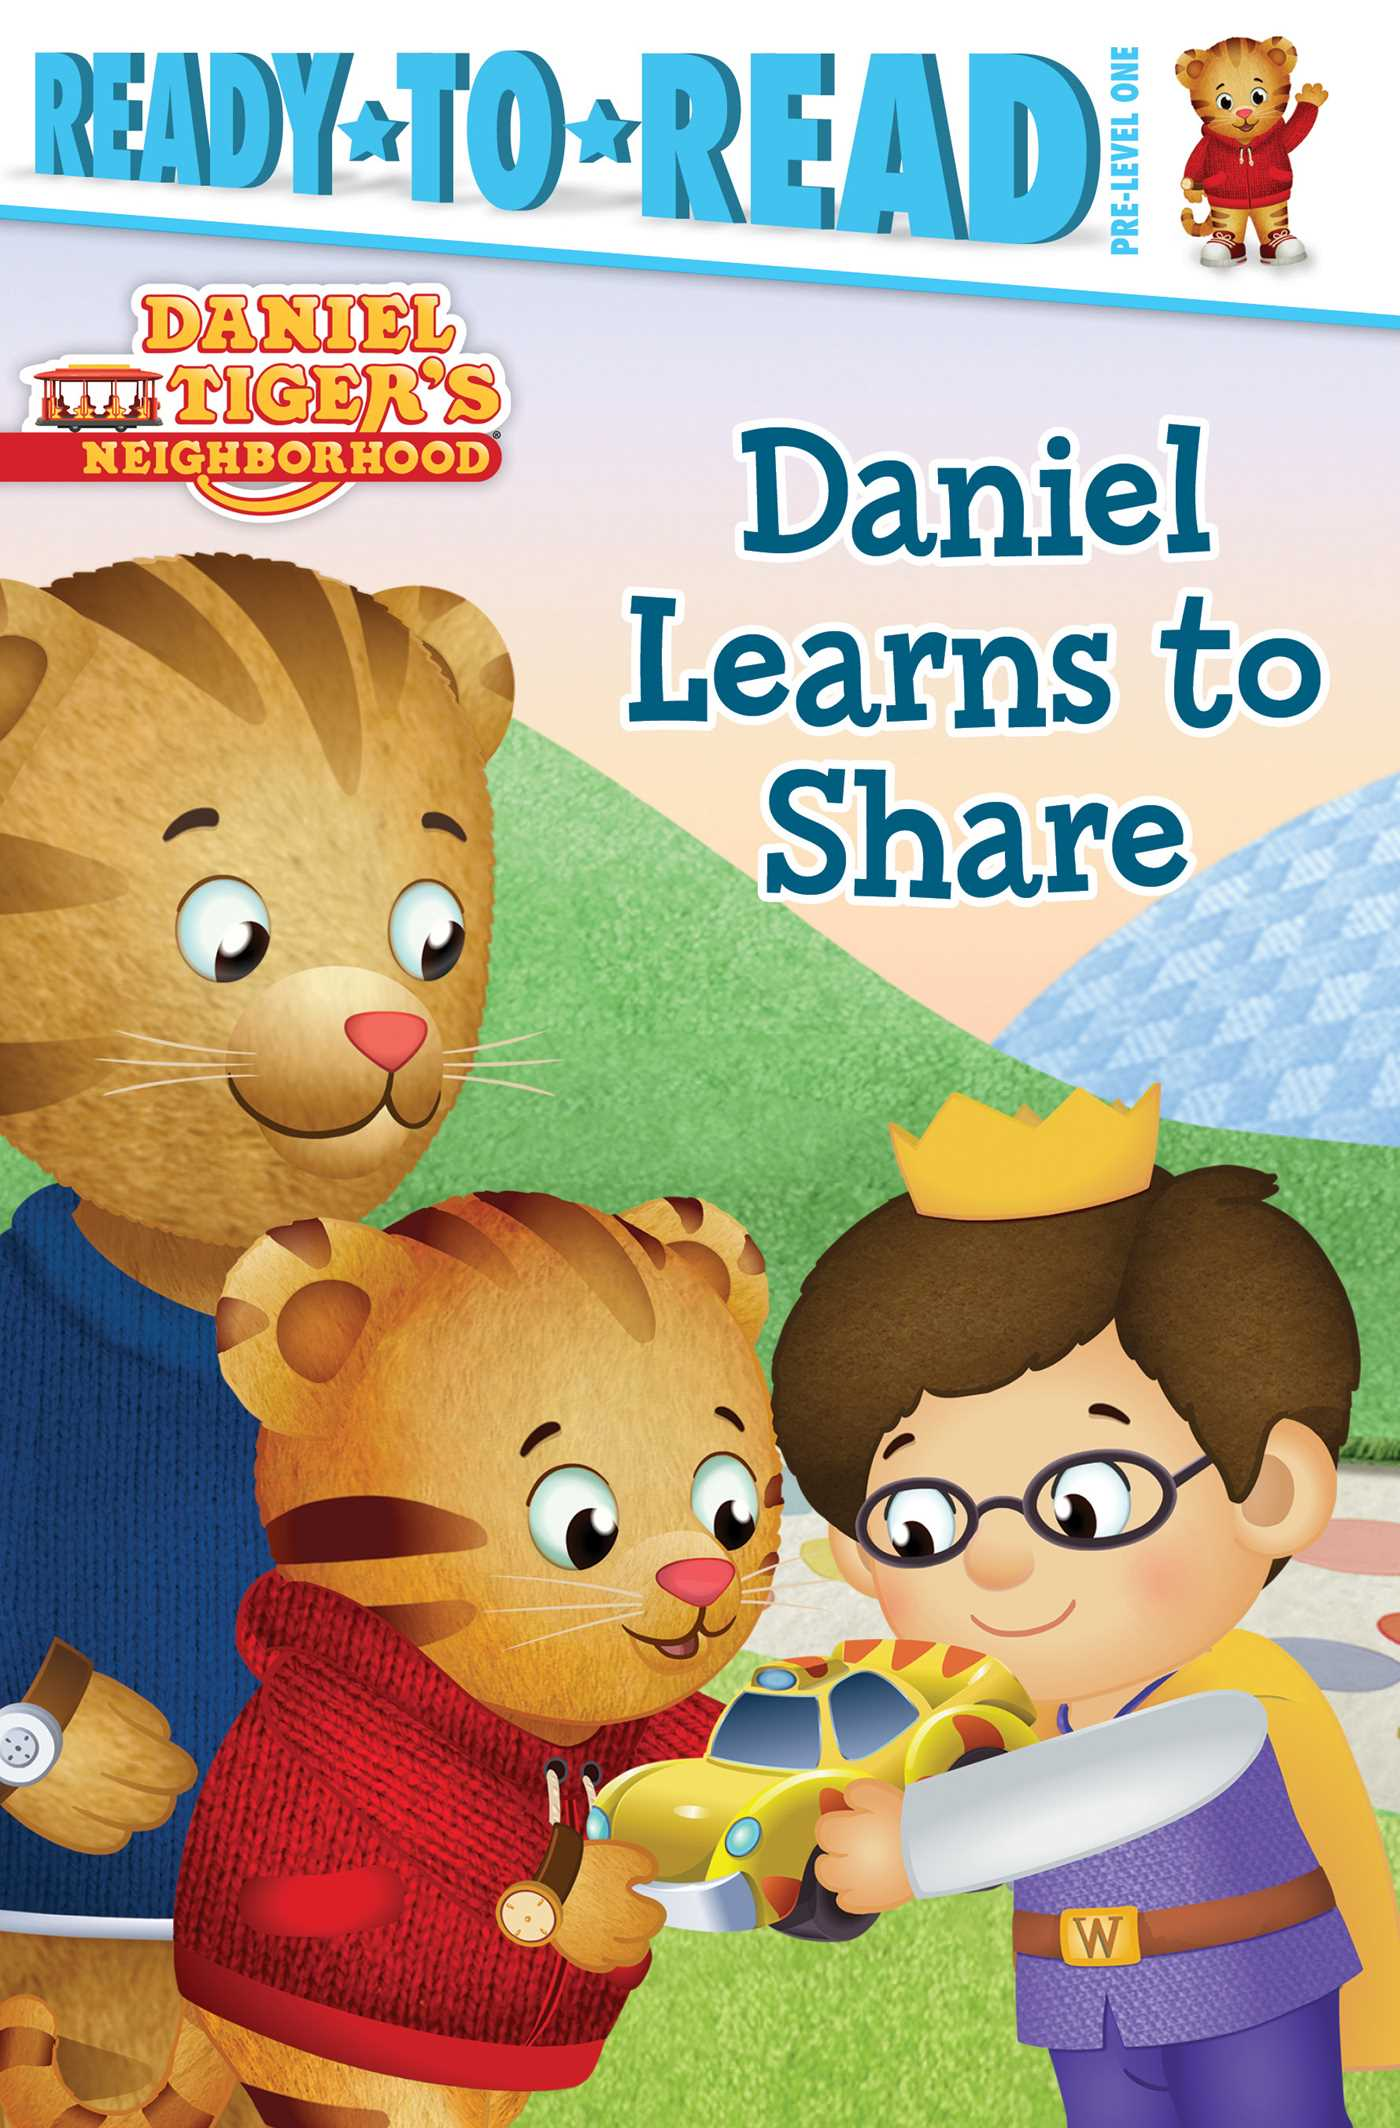 Daniel learns to share 9781481467537 hr